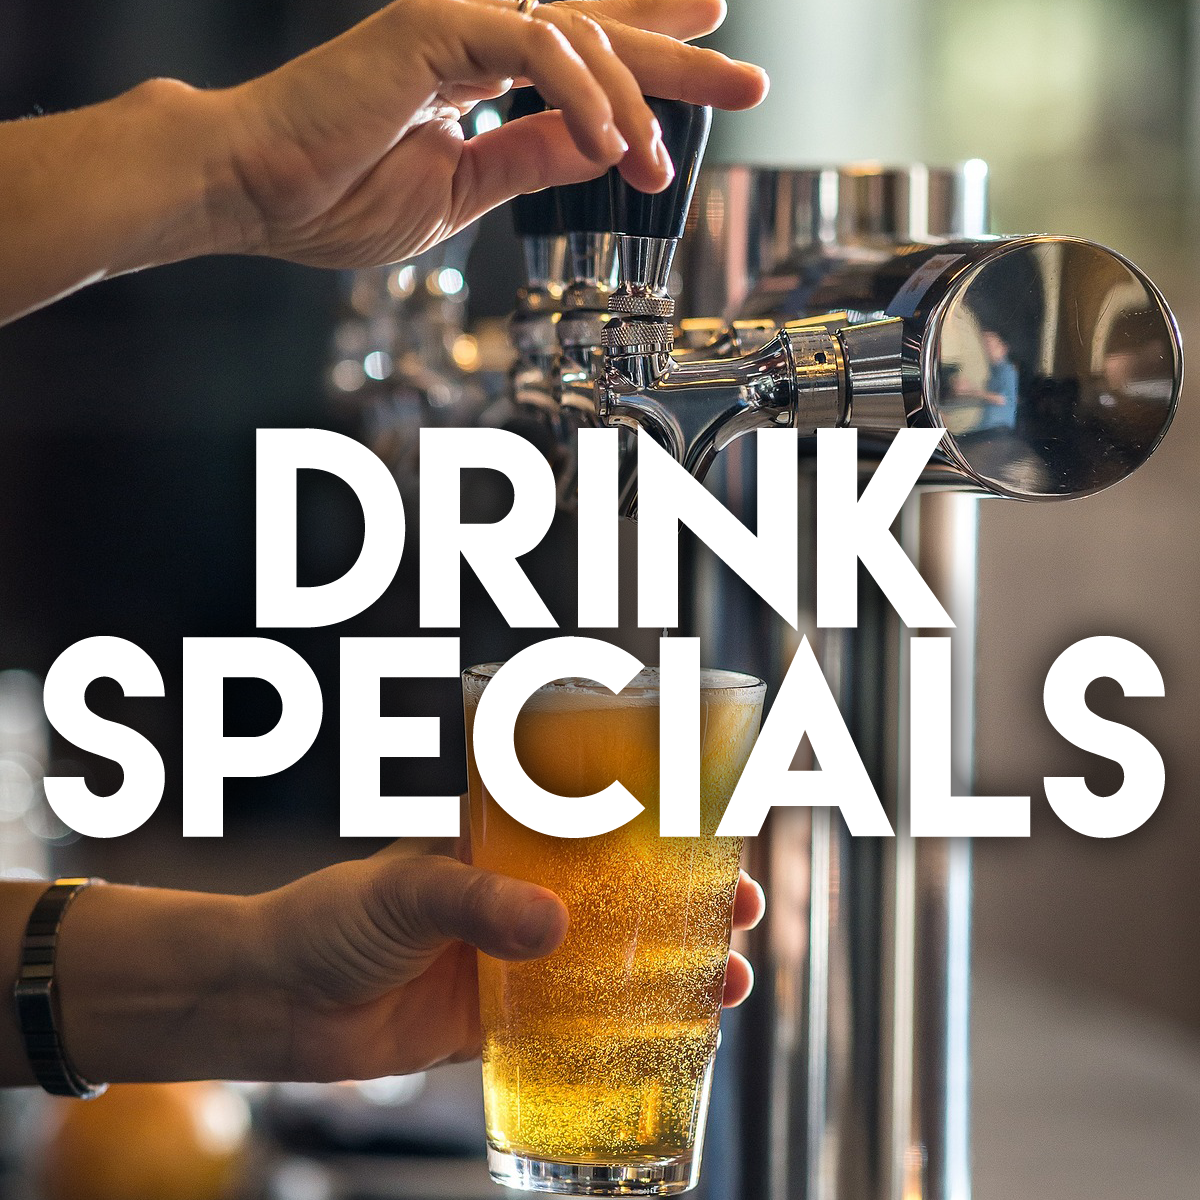 Wed Food Specials: Pyramid Pizza And Sports Bar